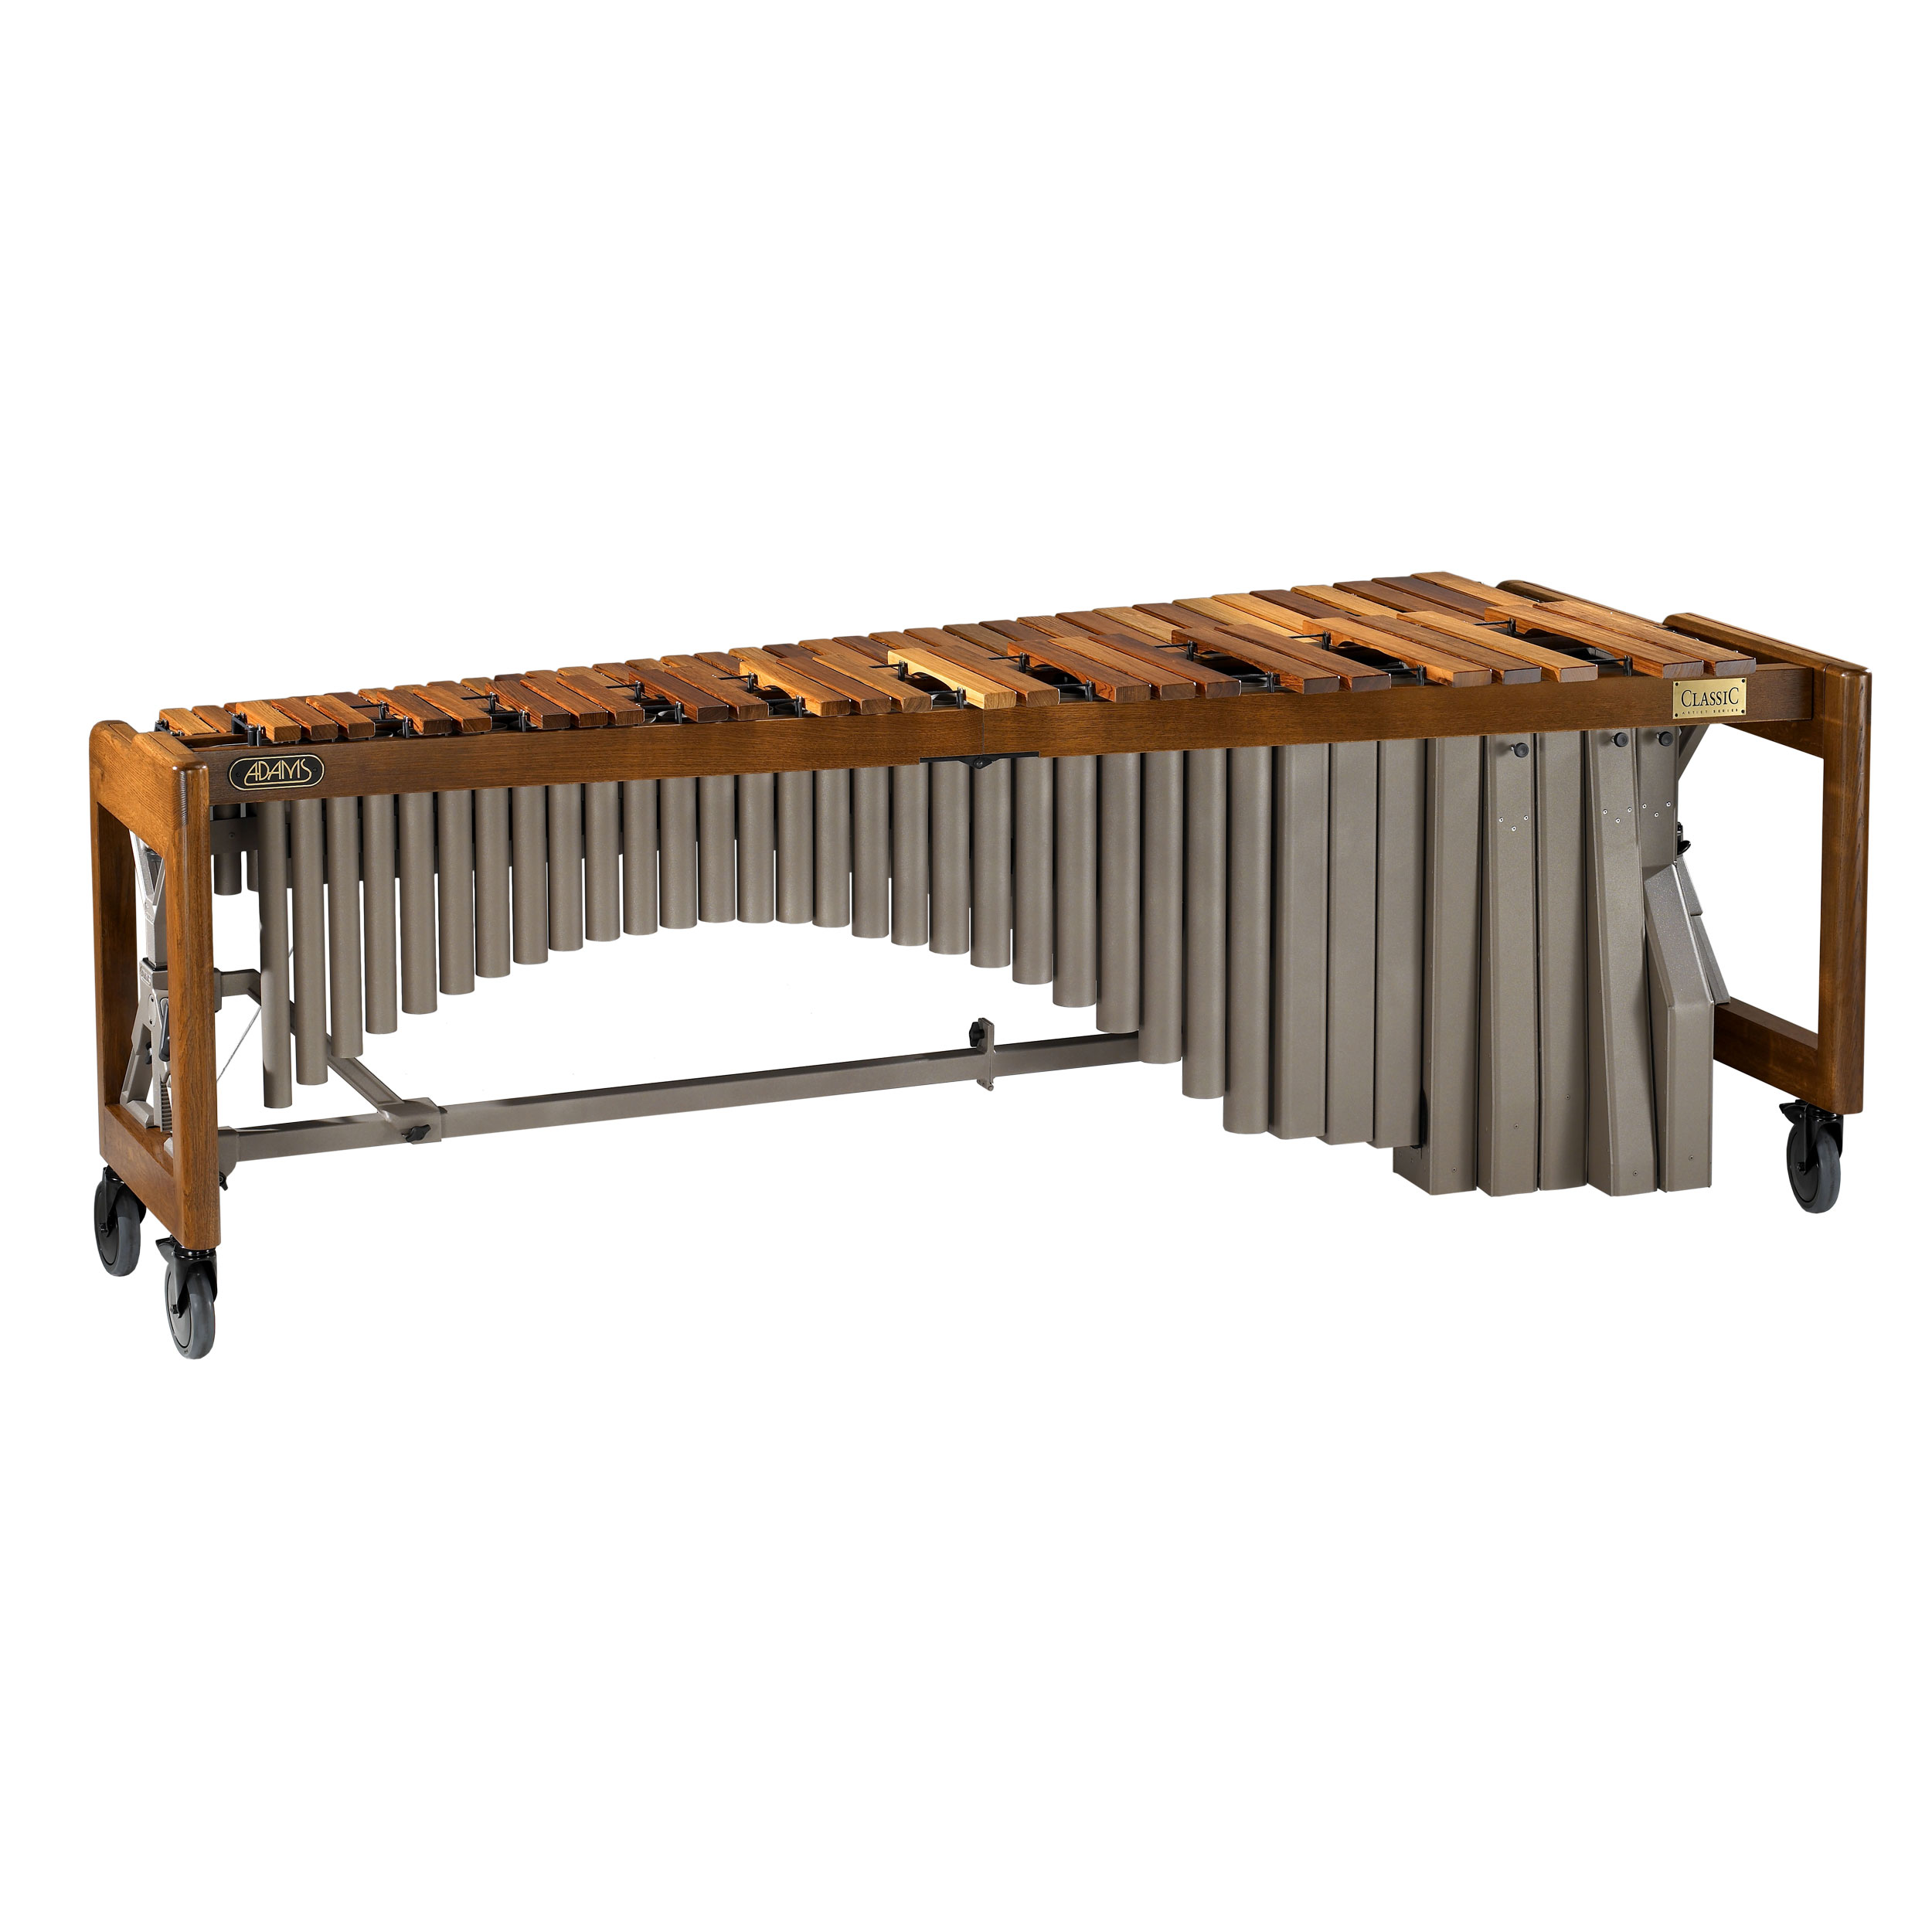 Adams 5.0 octave Rosewood Artist Classic Marimba with Voyager frame